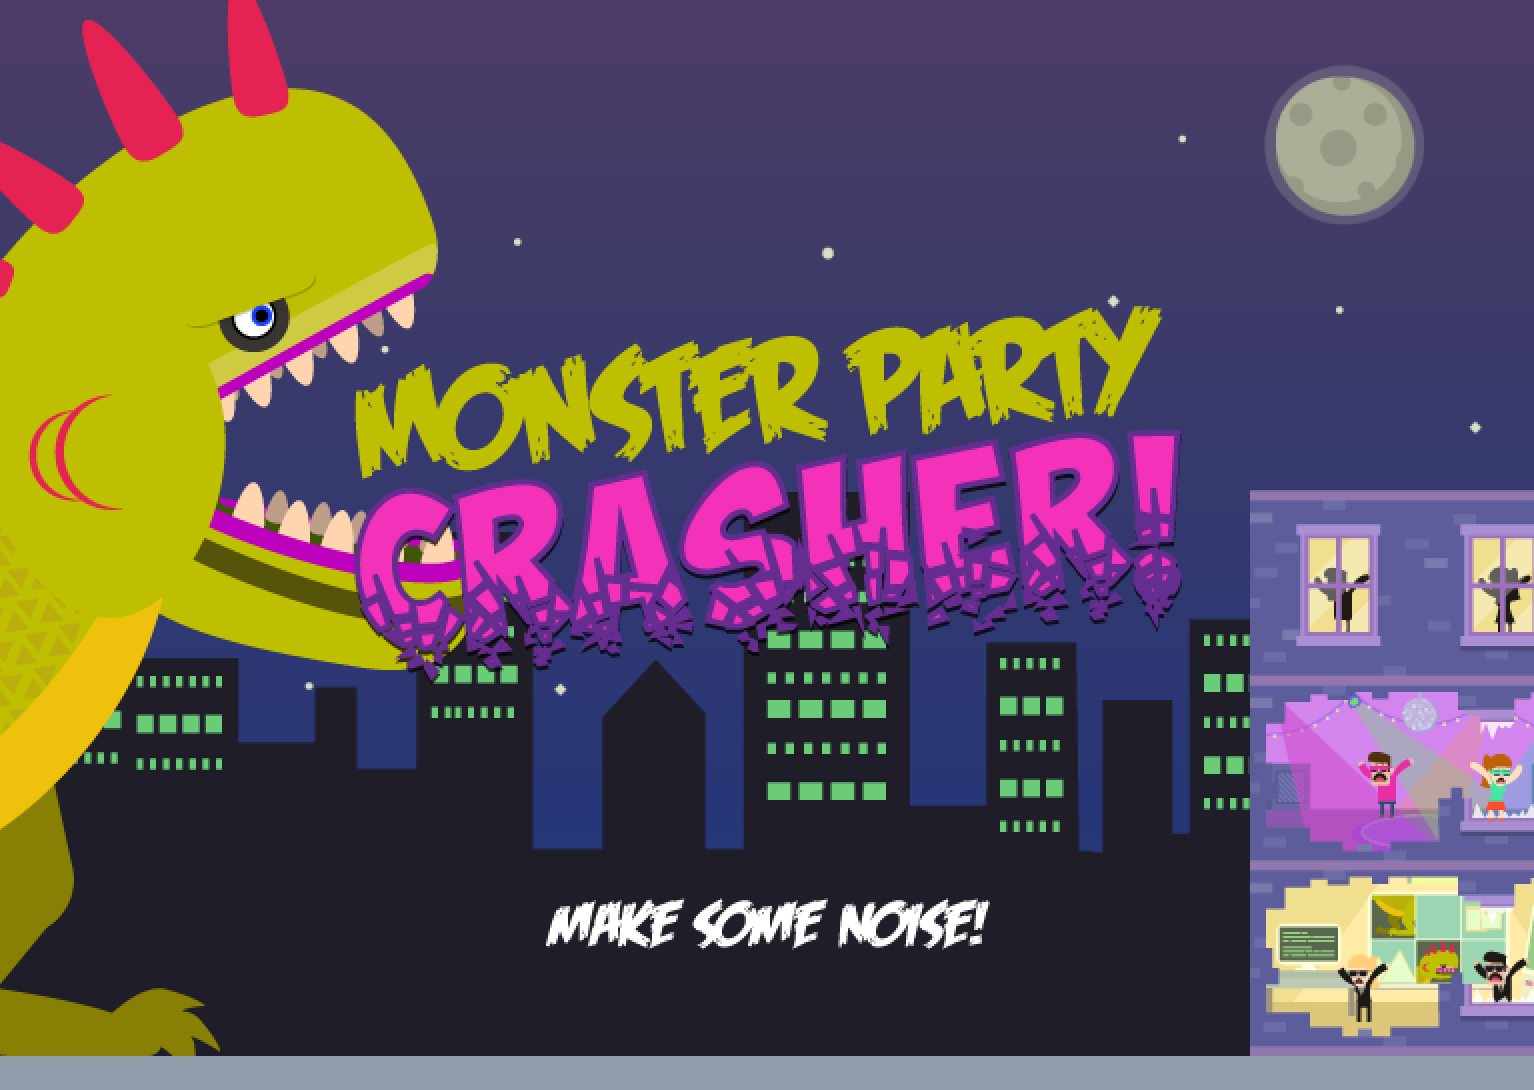 Monster Party Crasher